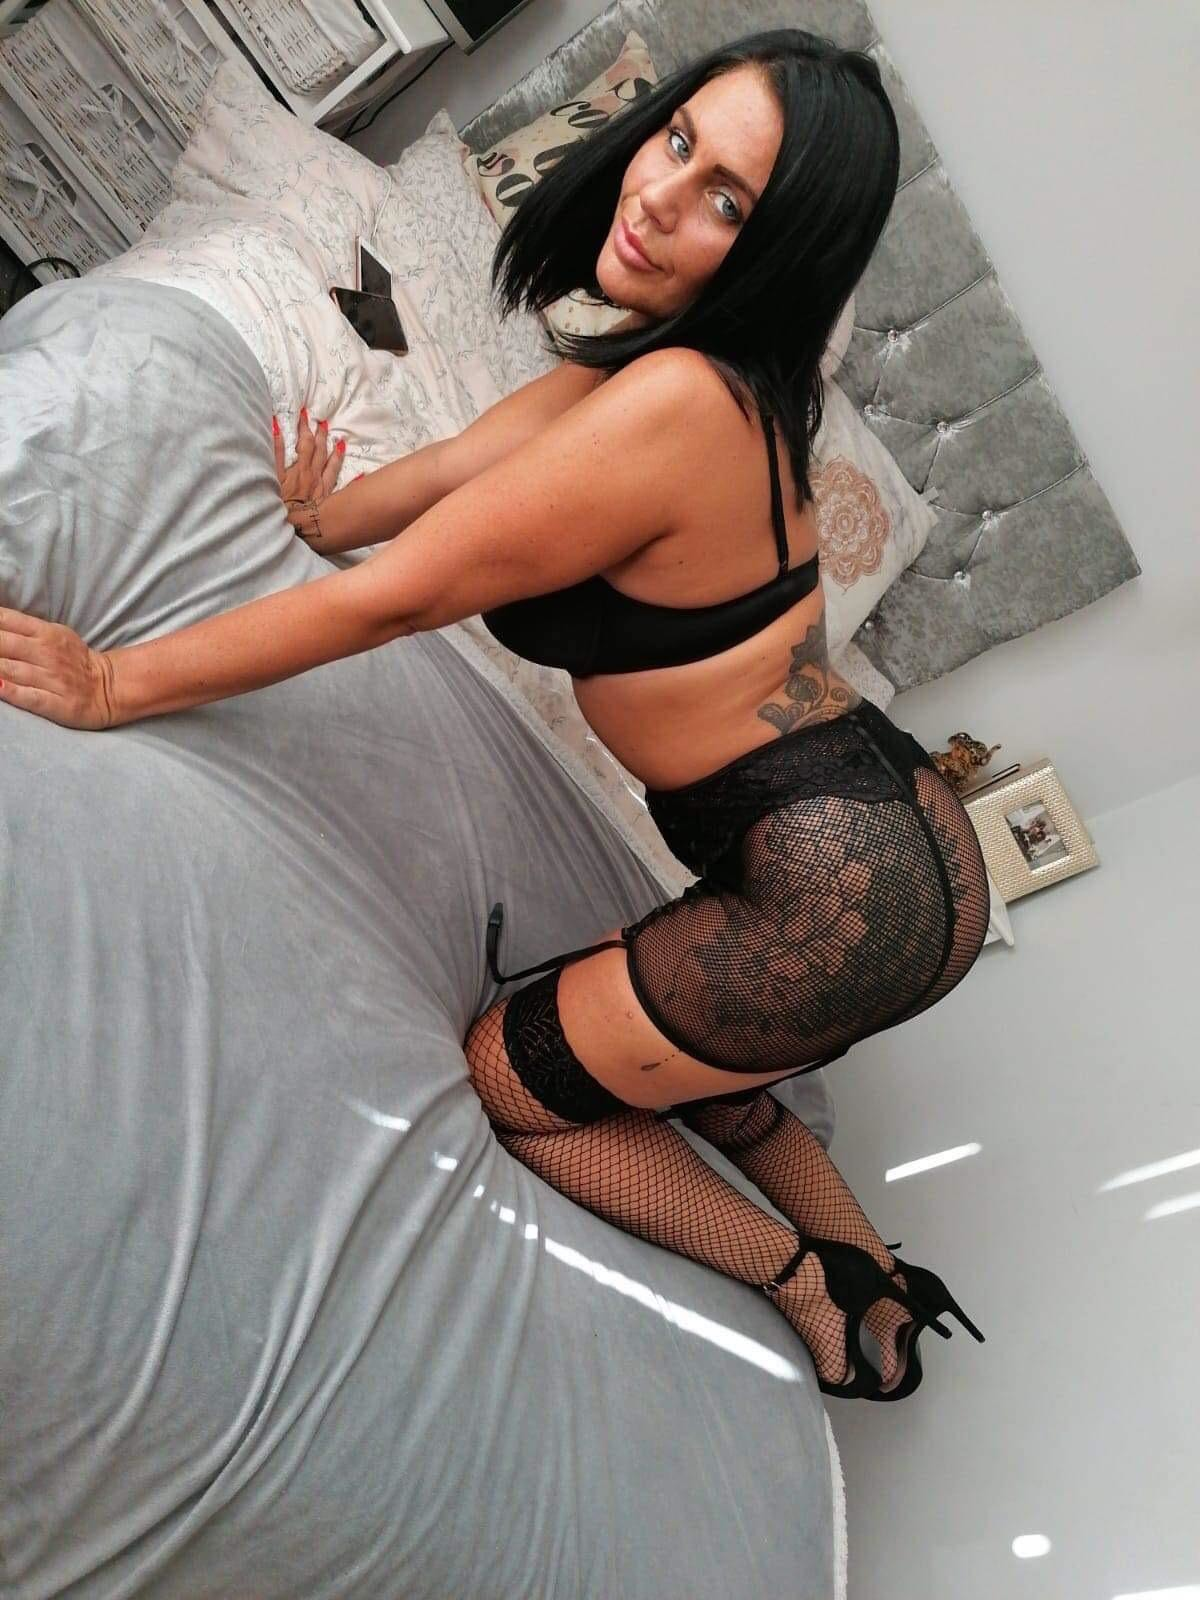 Curvy cam girl Layla fox bending over on top of her bed in her sexy fishnets.